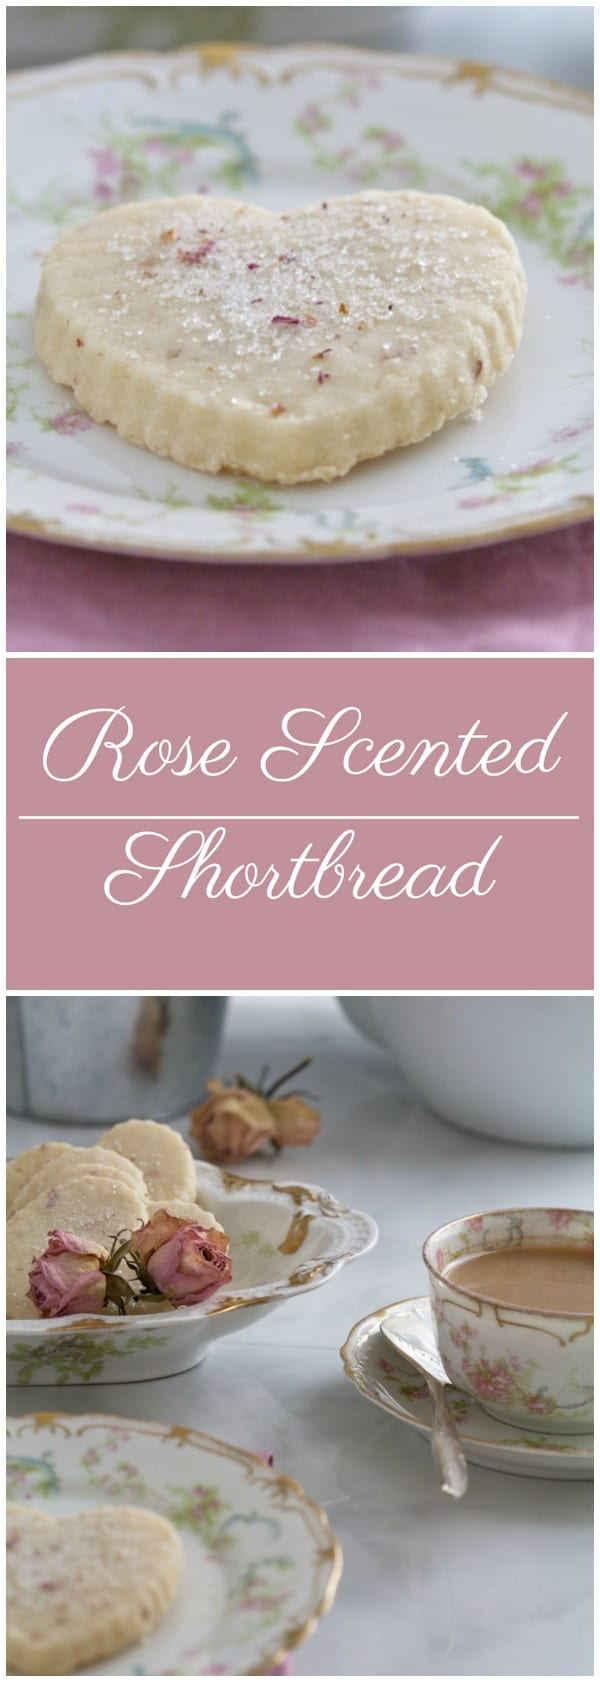 Rose Scented Shortbread